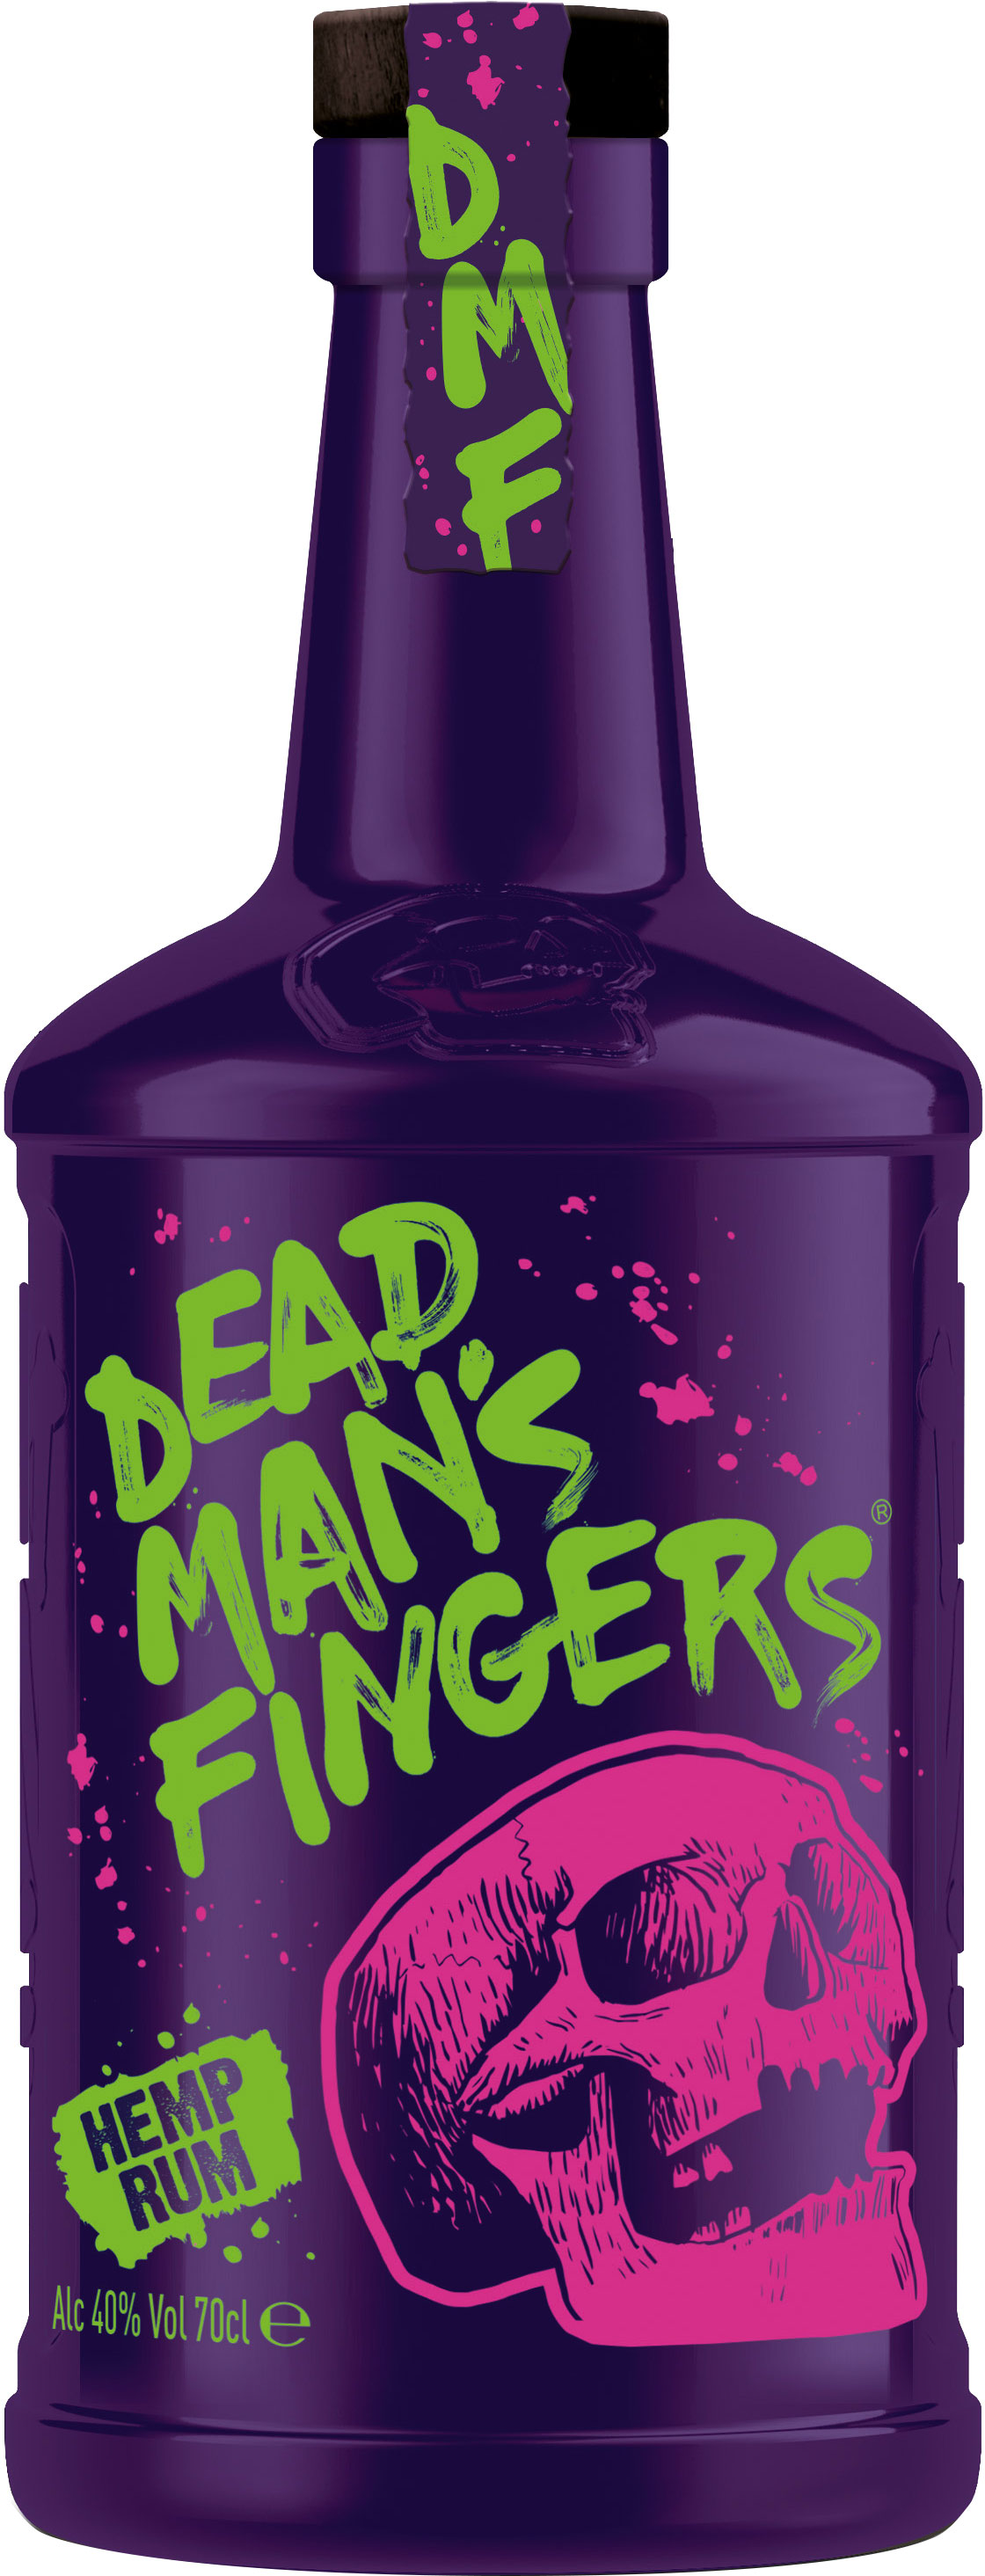 Dead Mans Fingers - Hemp Rum 70cl Bottle